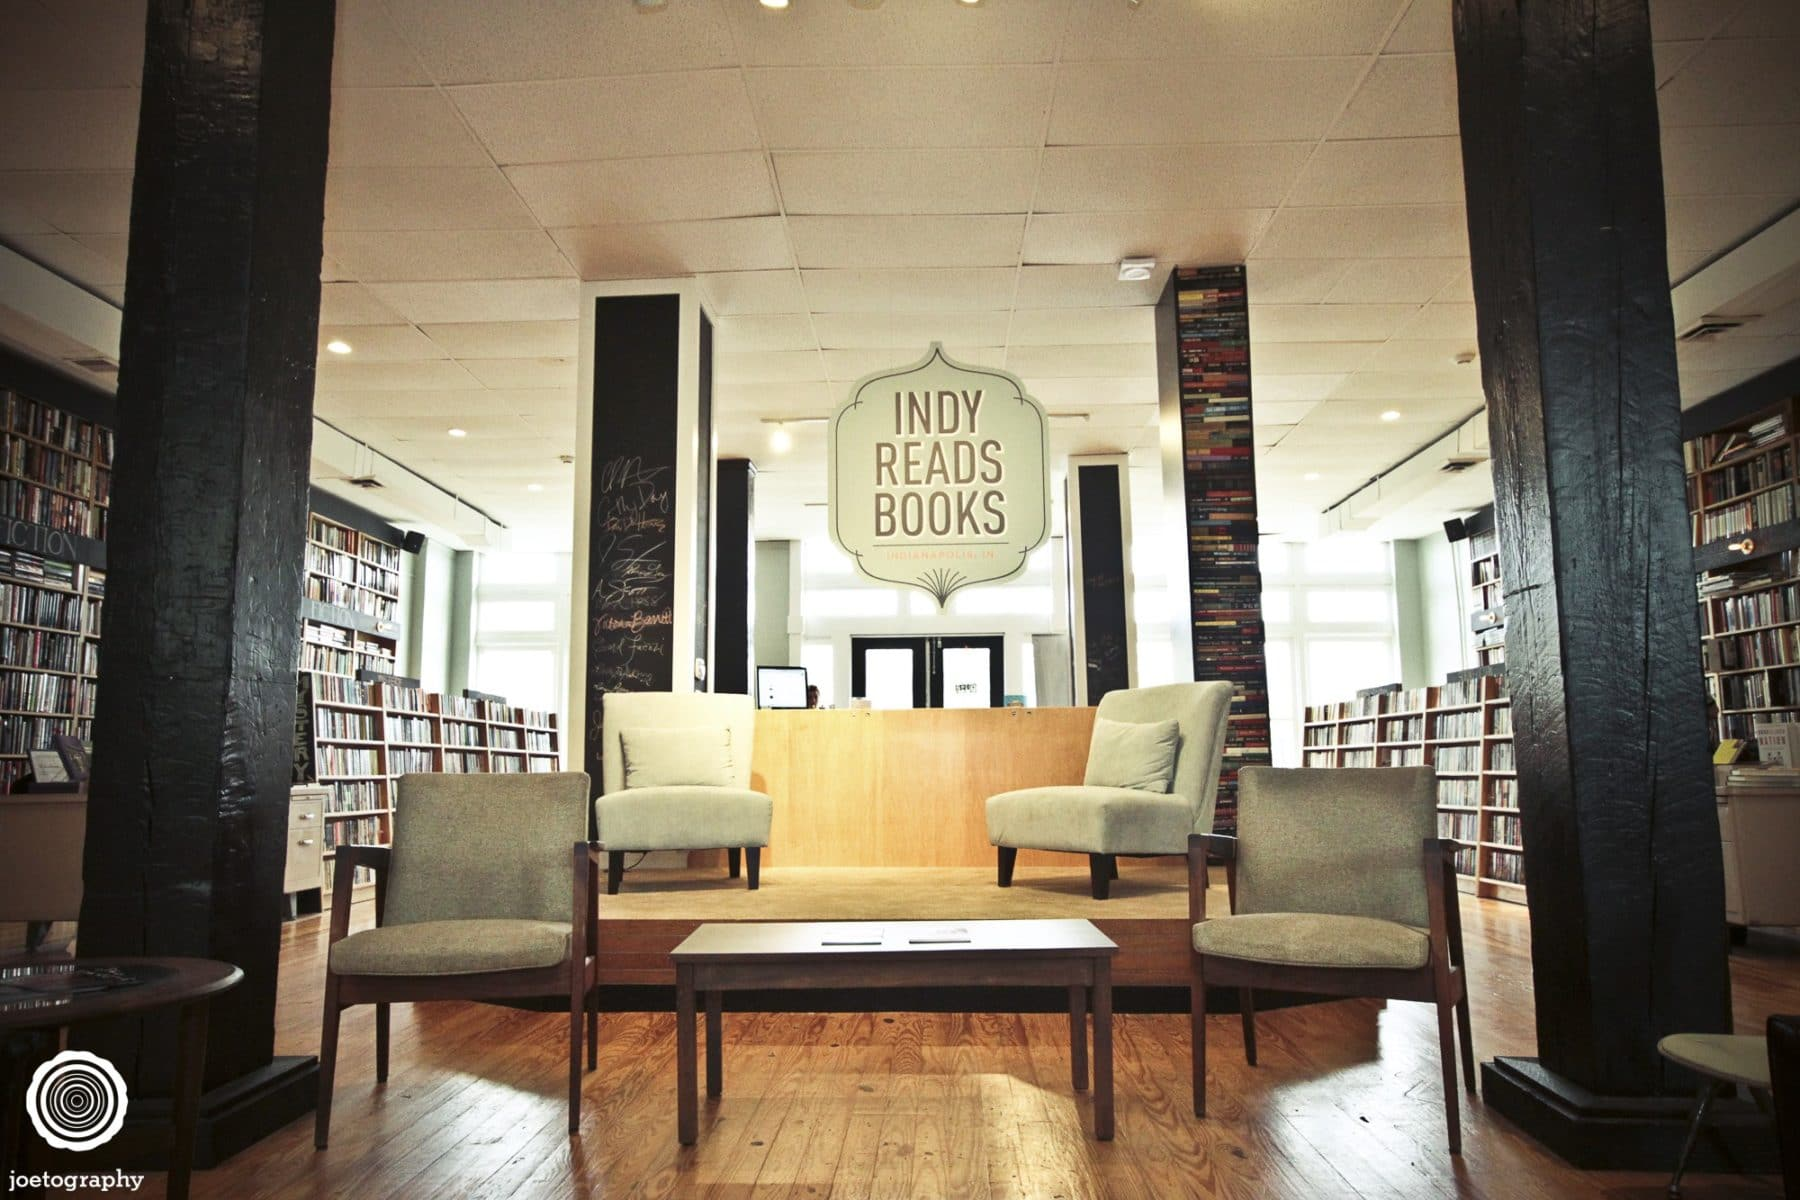 Indy-Reads-Books-Making-Indianapolis-Literate-Photos-8